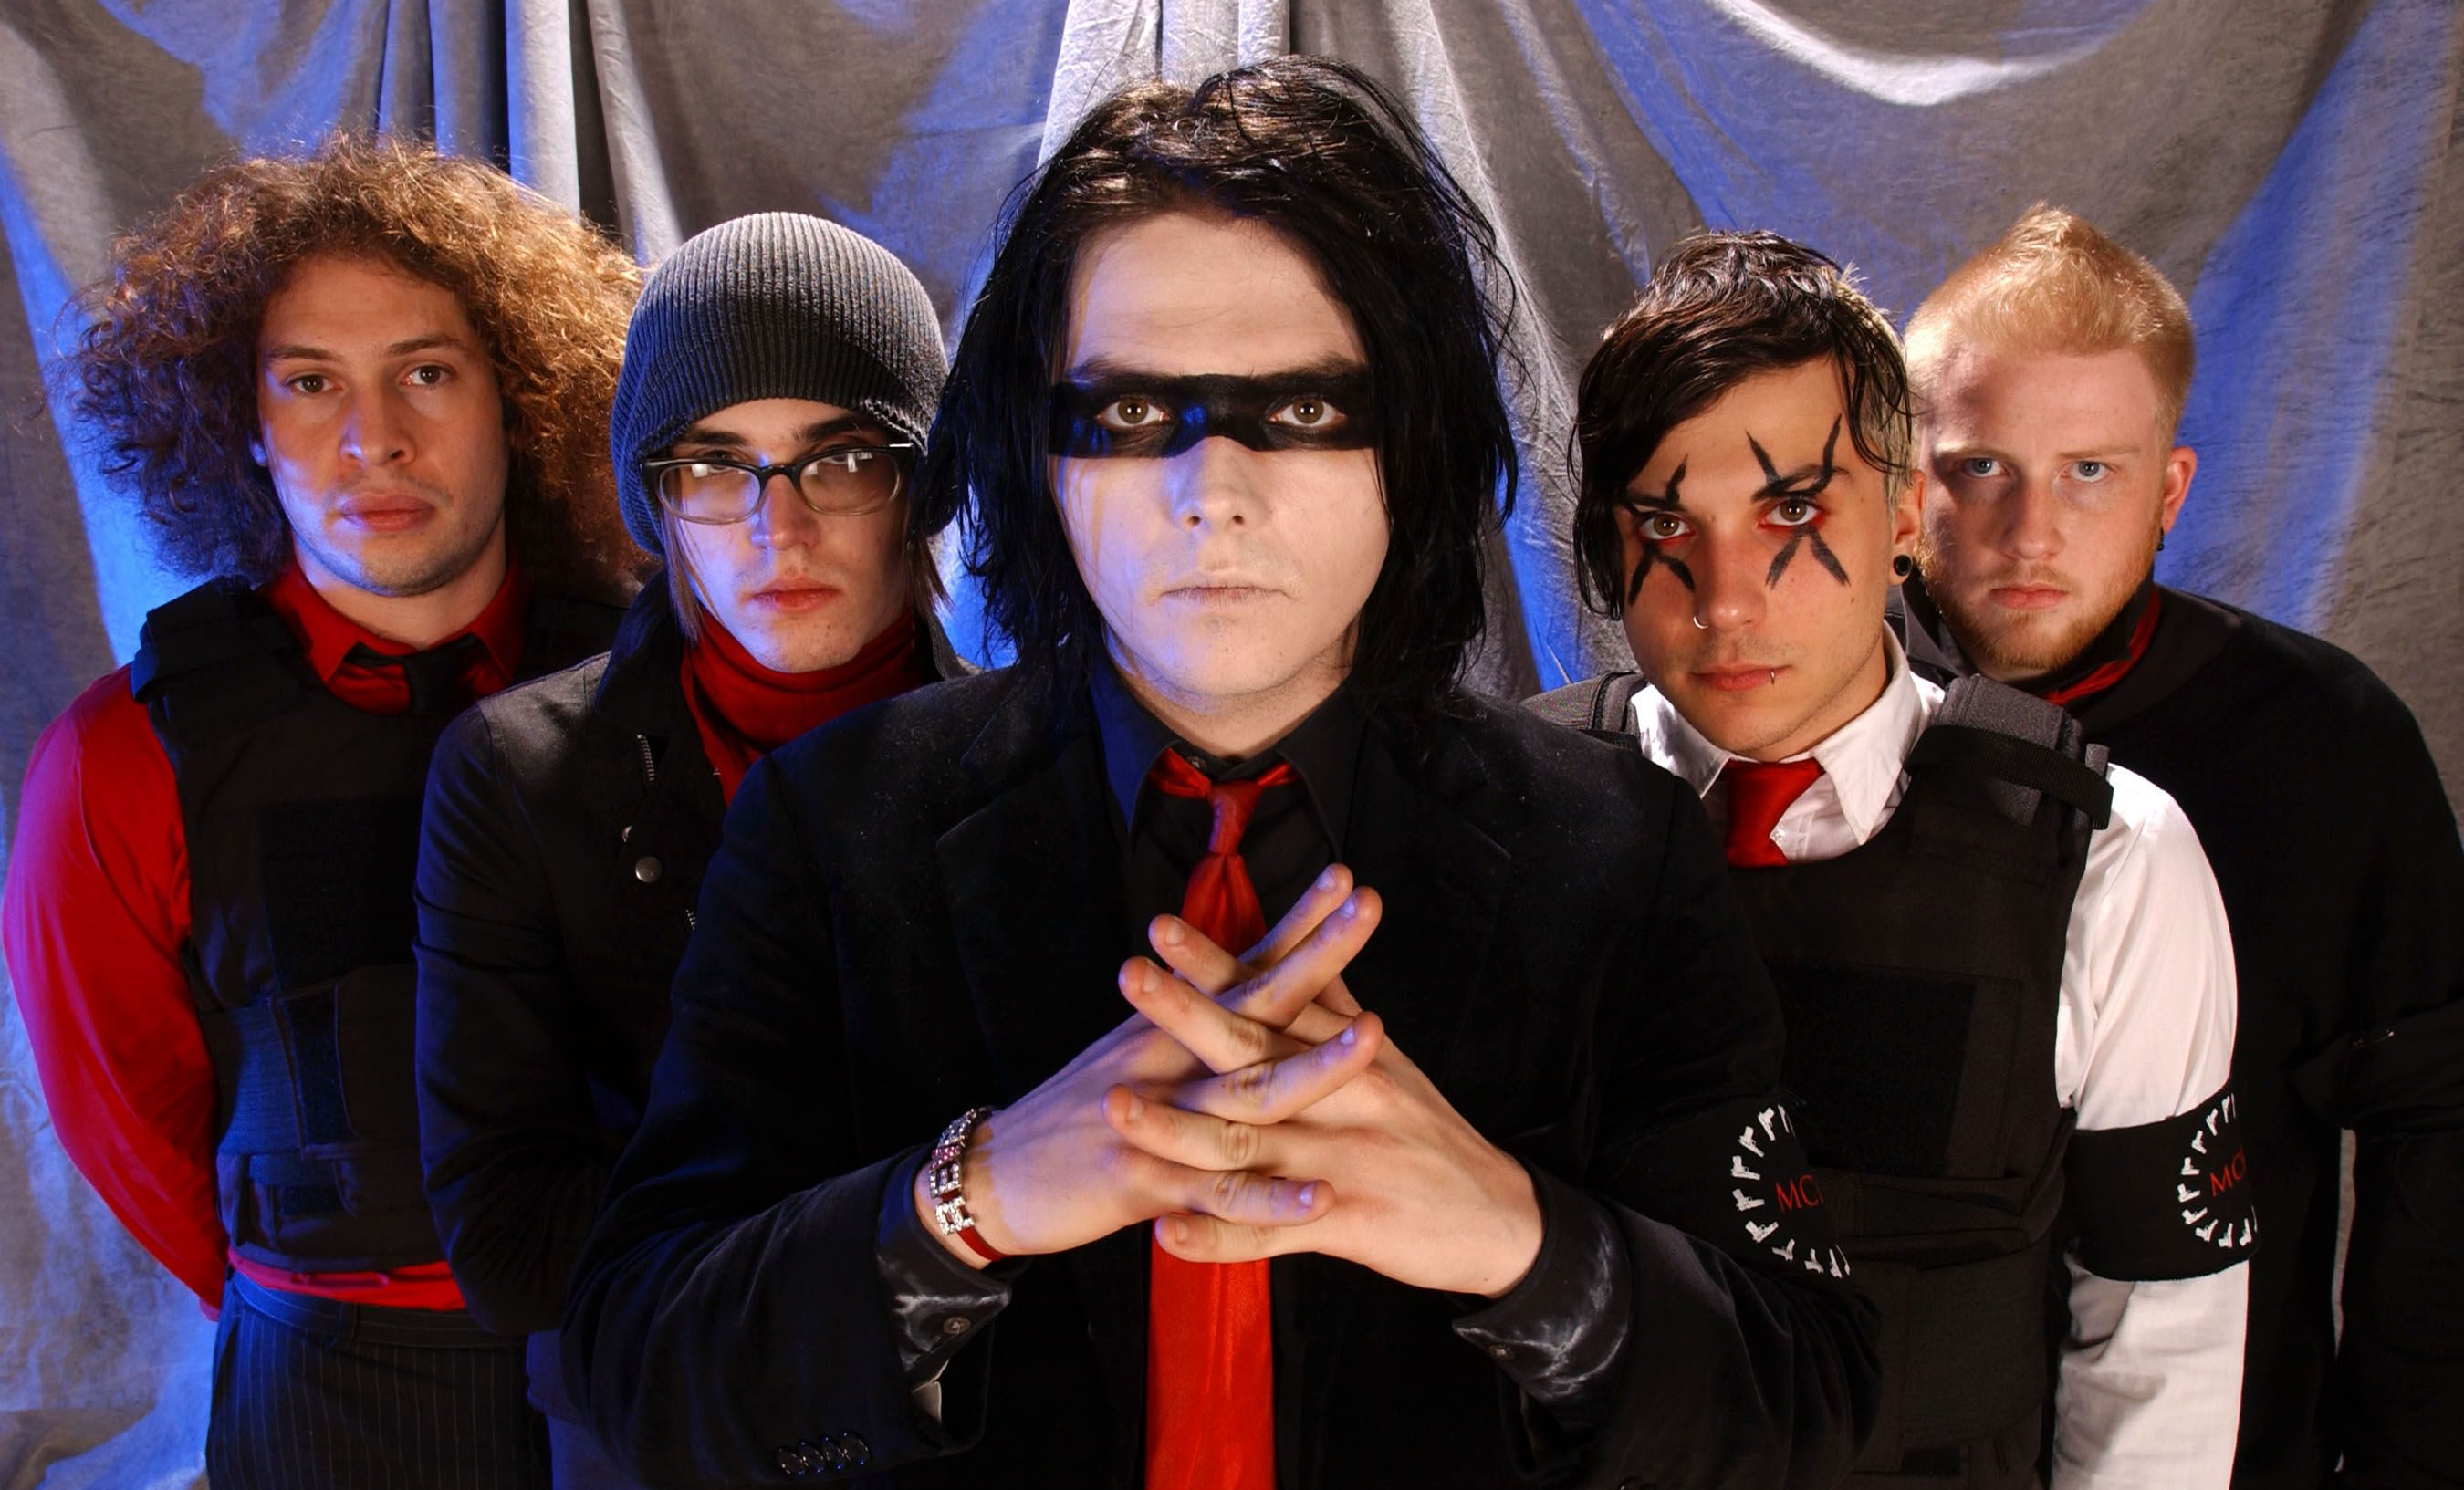 Fall Out Boy Computer Wallpaper My Chemical Romance S Three Cheers For Sweet Revenge Re